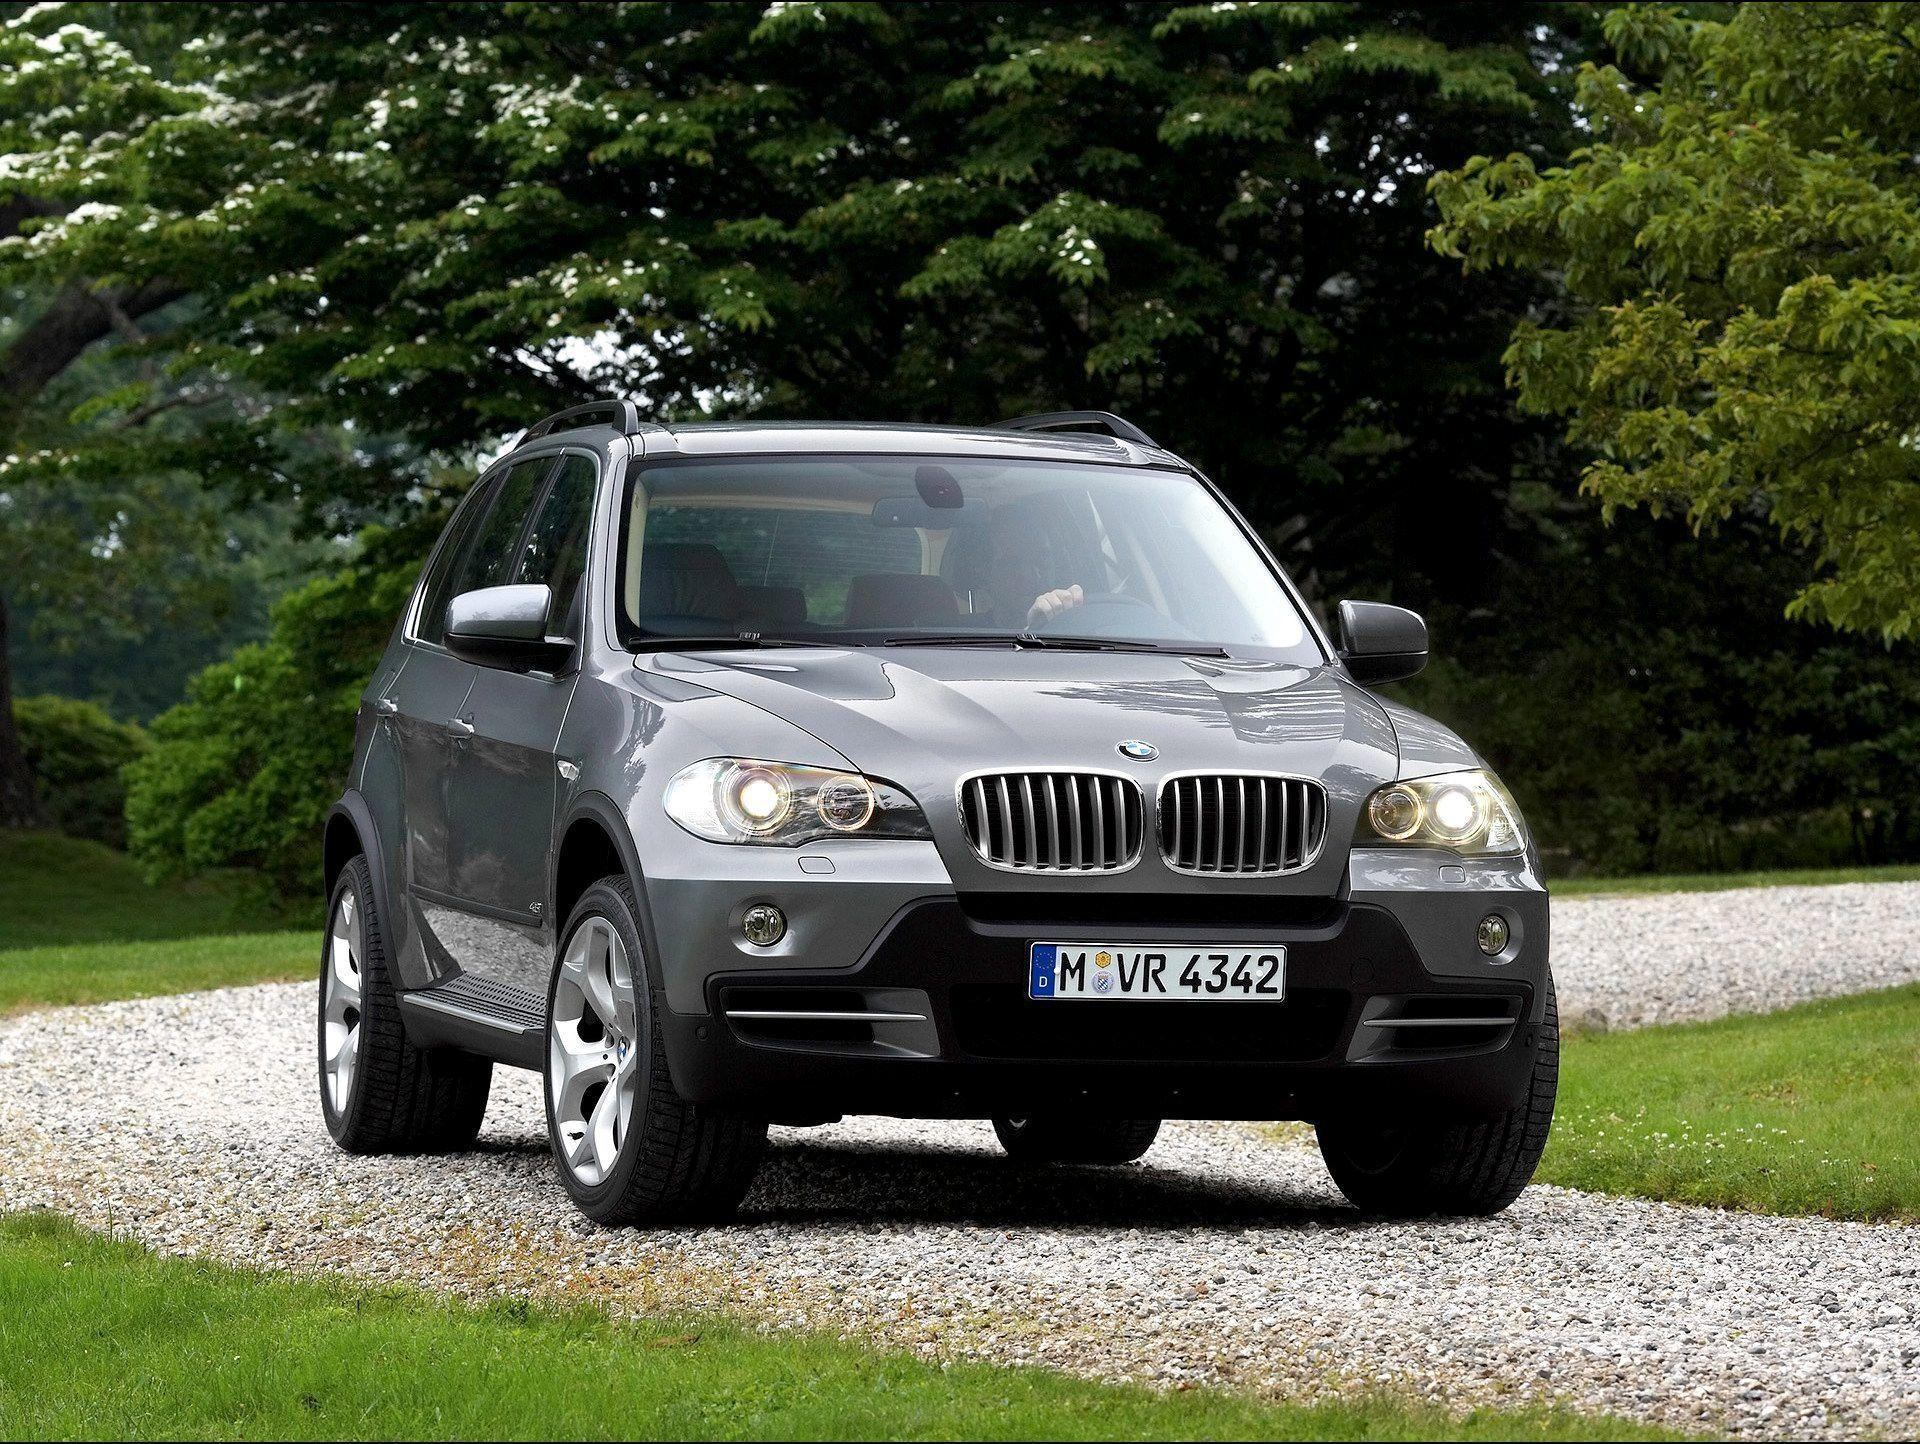 2007 BMW X5 Wallpaper 16 - 1920x1440